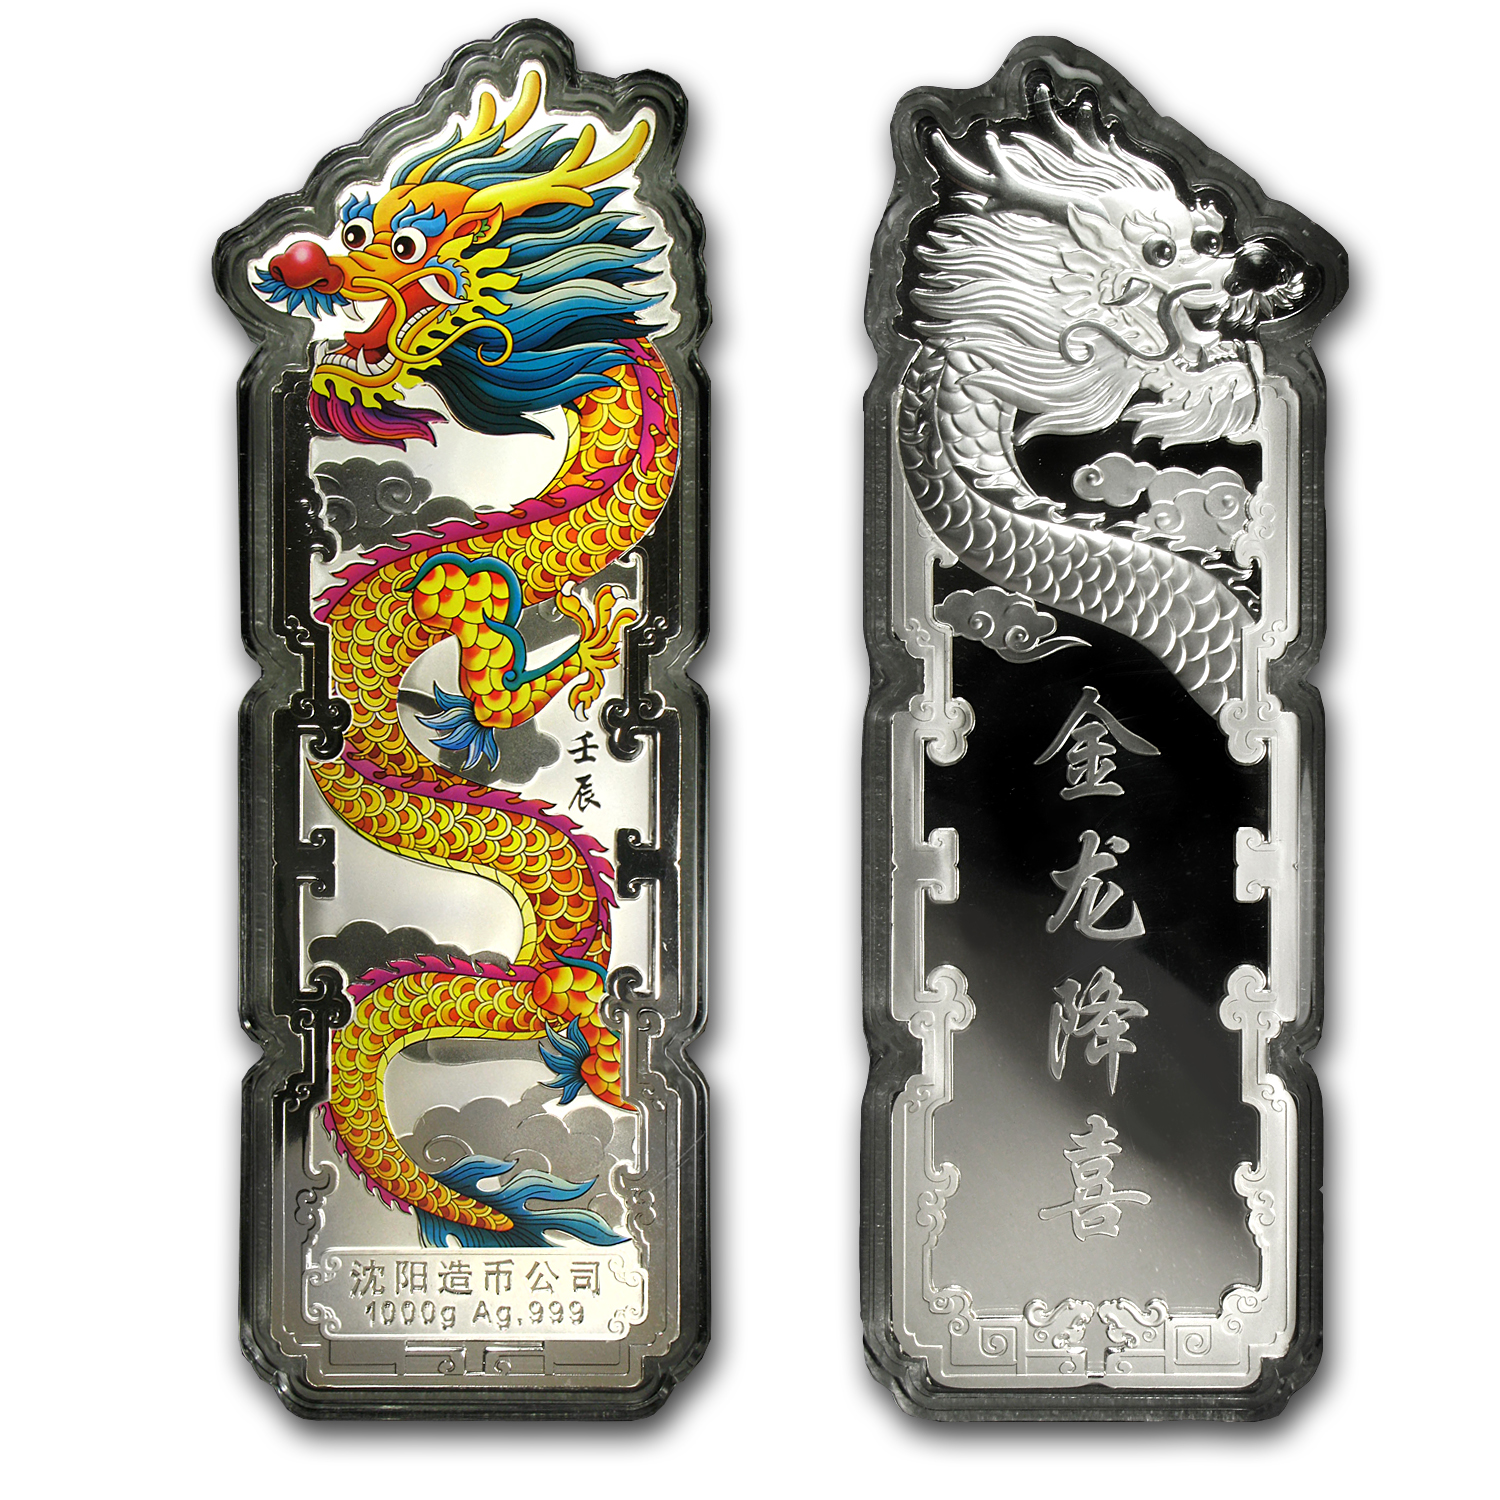 2012 1000 gram Silver China Year of the Dragon Bar (Colorized)